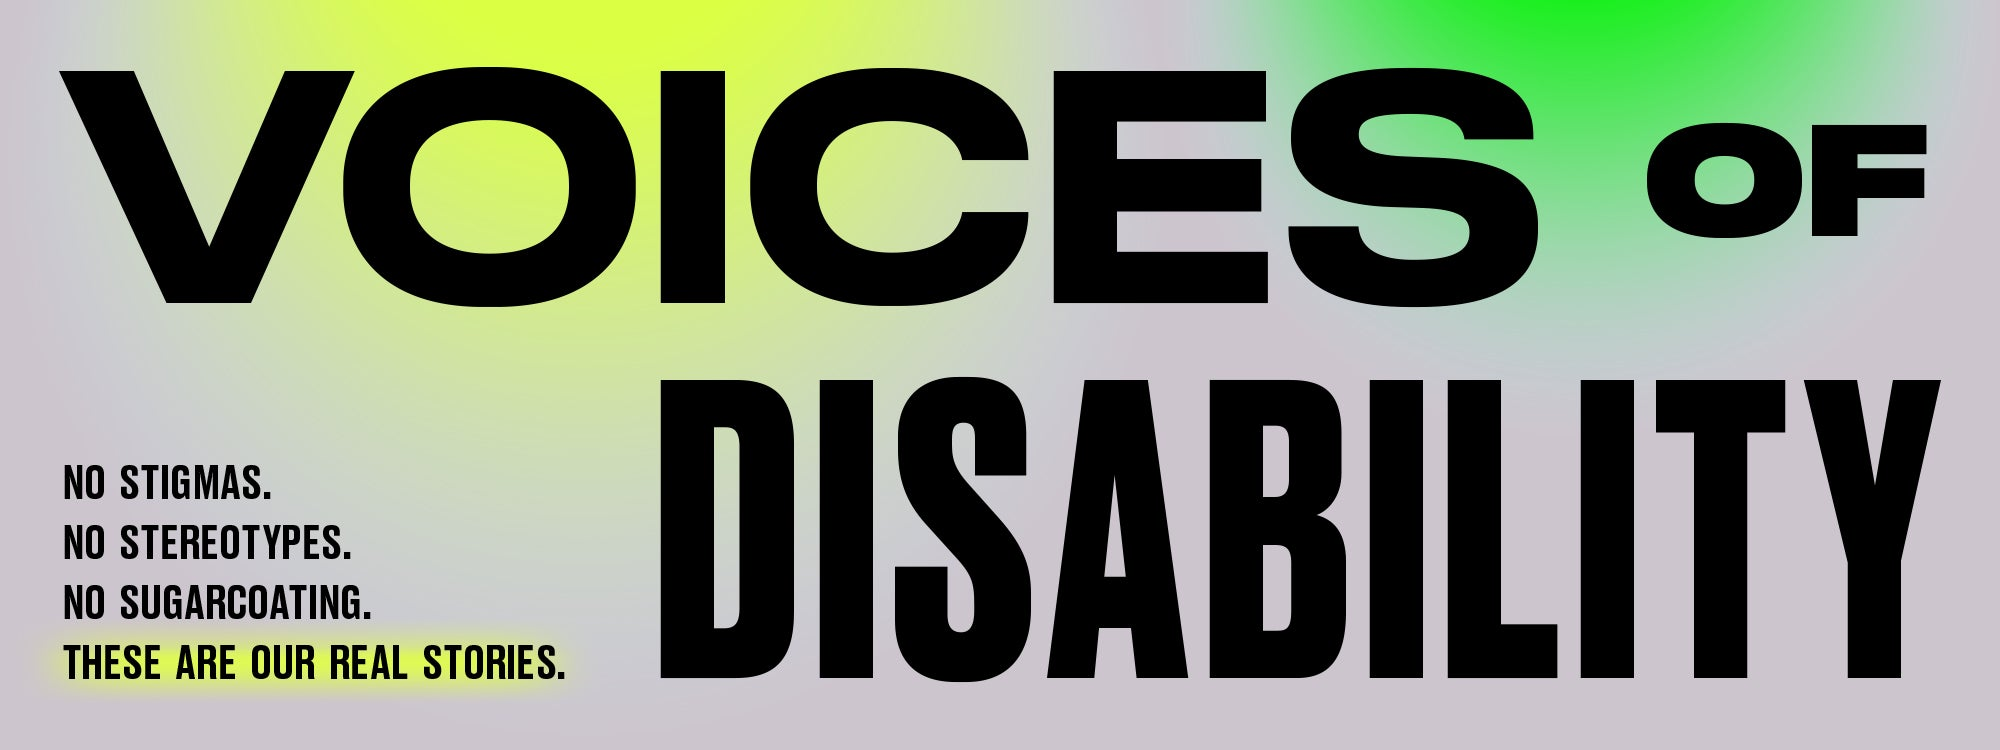 Voices of Disability. No stigmas, no stereotypes, no sugarcoating. These are our real stories.